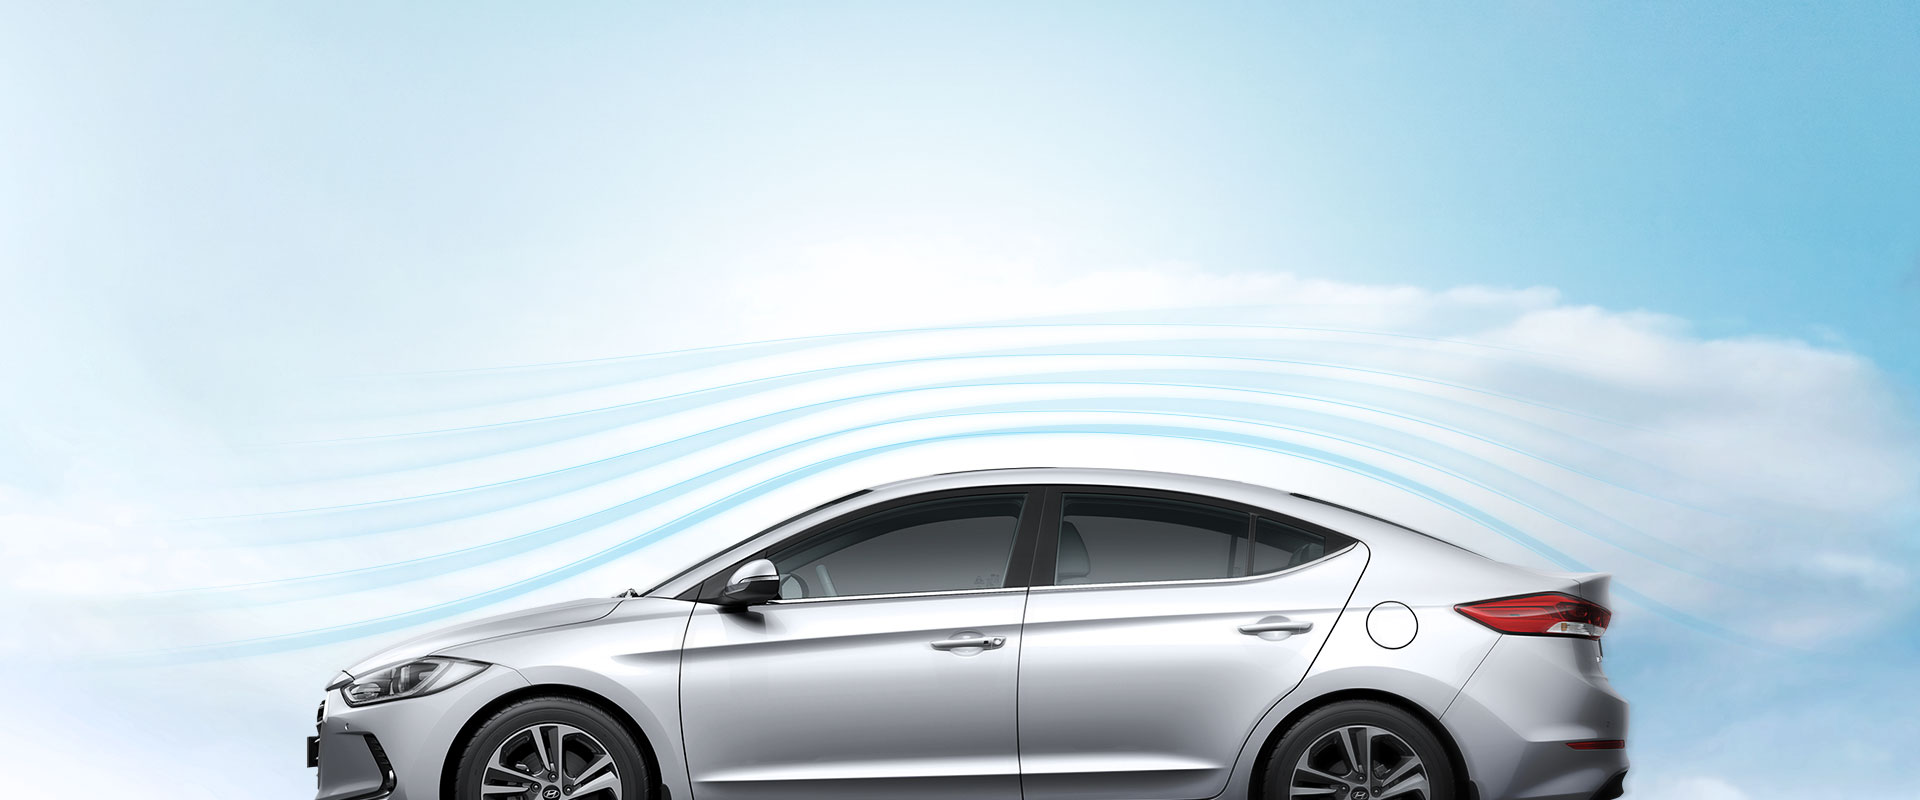 Aerodynamic graphic around the exterior of silver Elantra